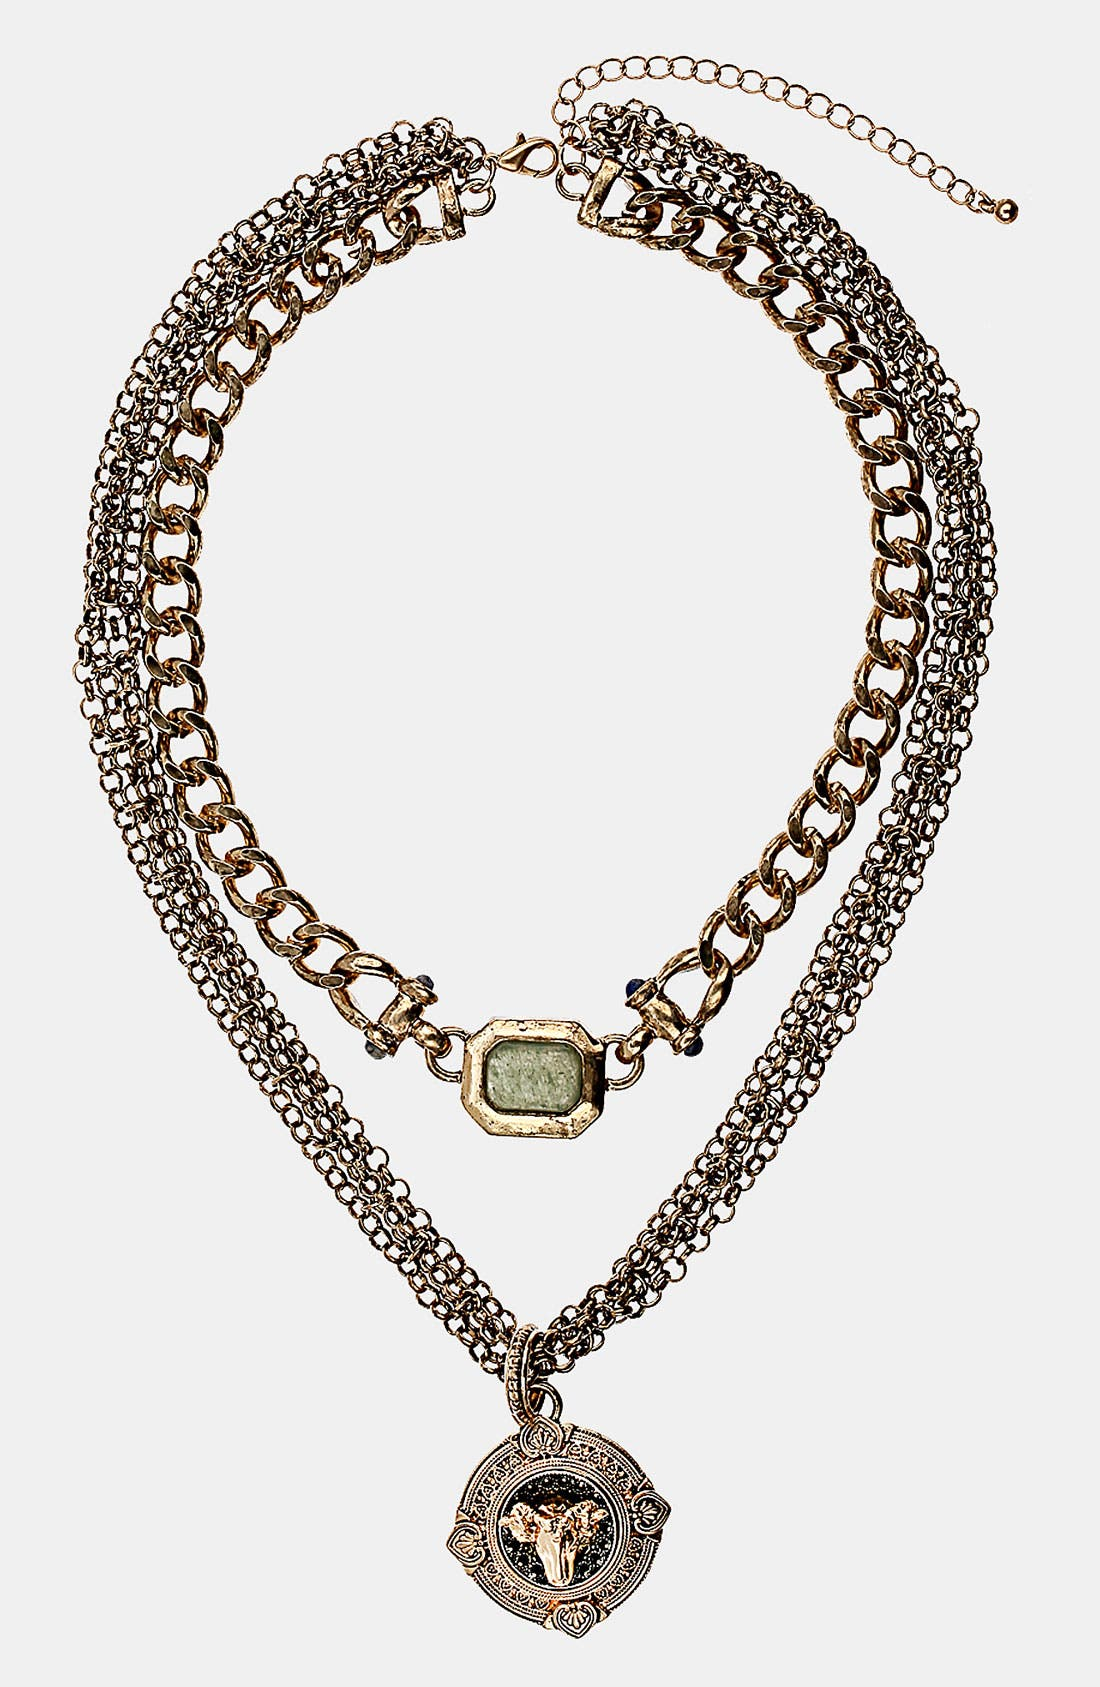 Alternate Image 1 Selected - Topshop 'Ram' Multi Row Chain Necklace